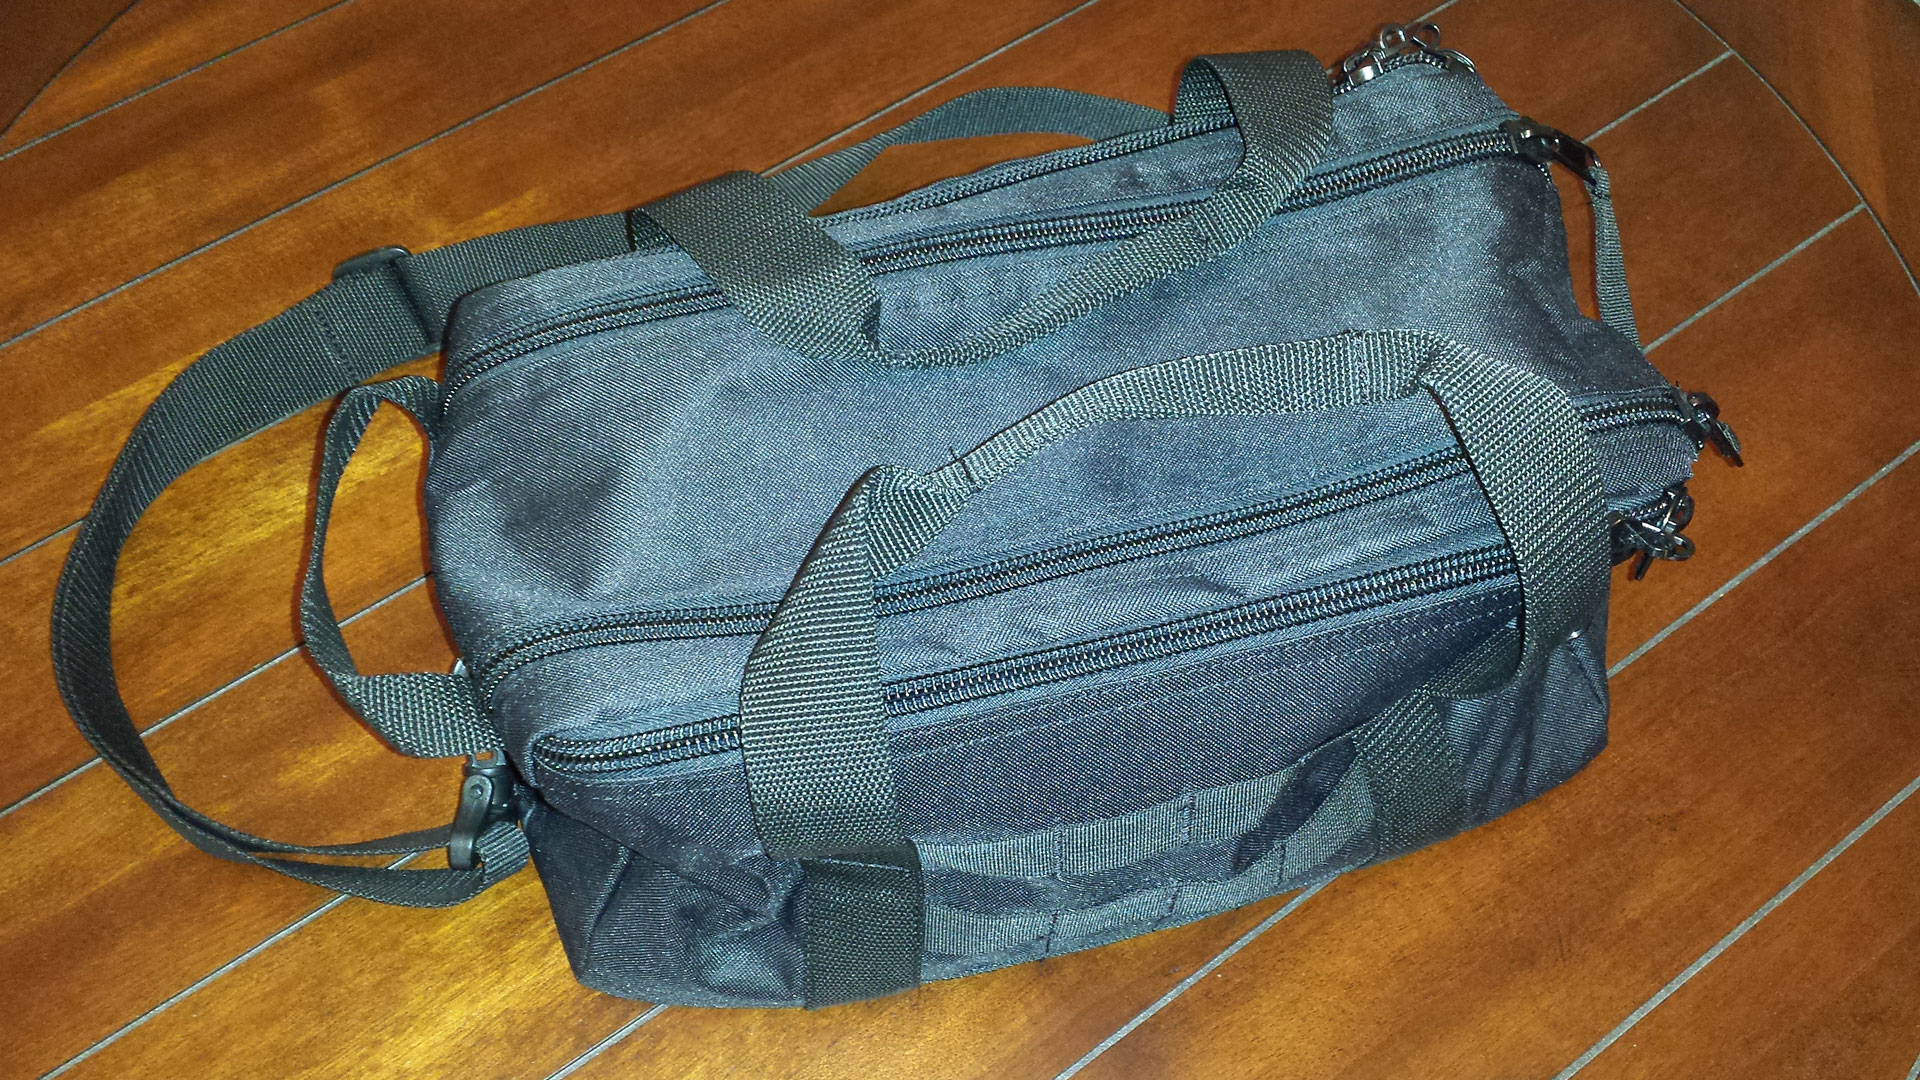 Blackhawk Sportster Range Bag Review